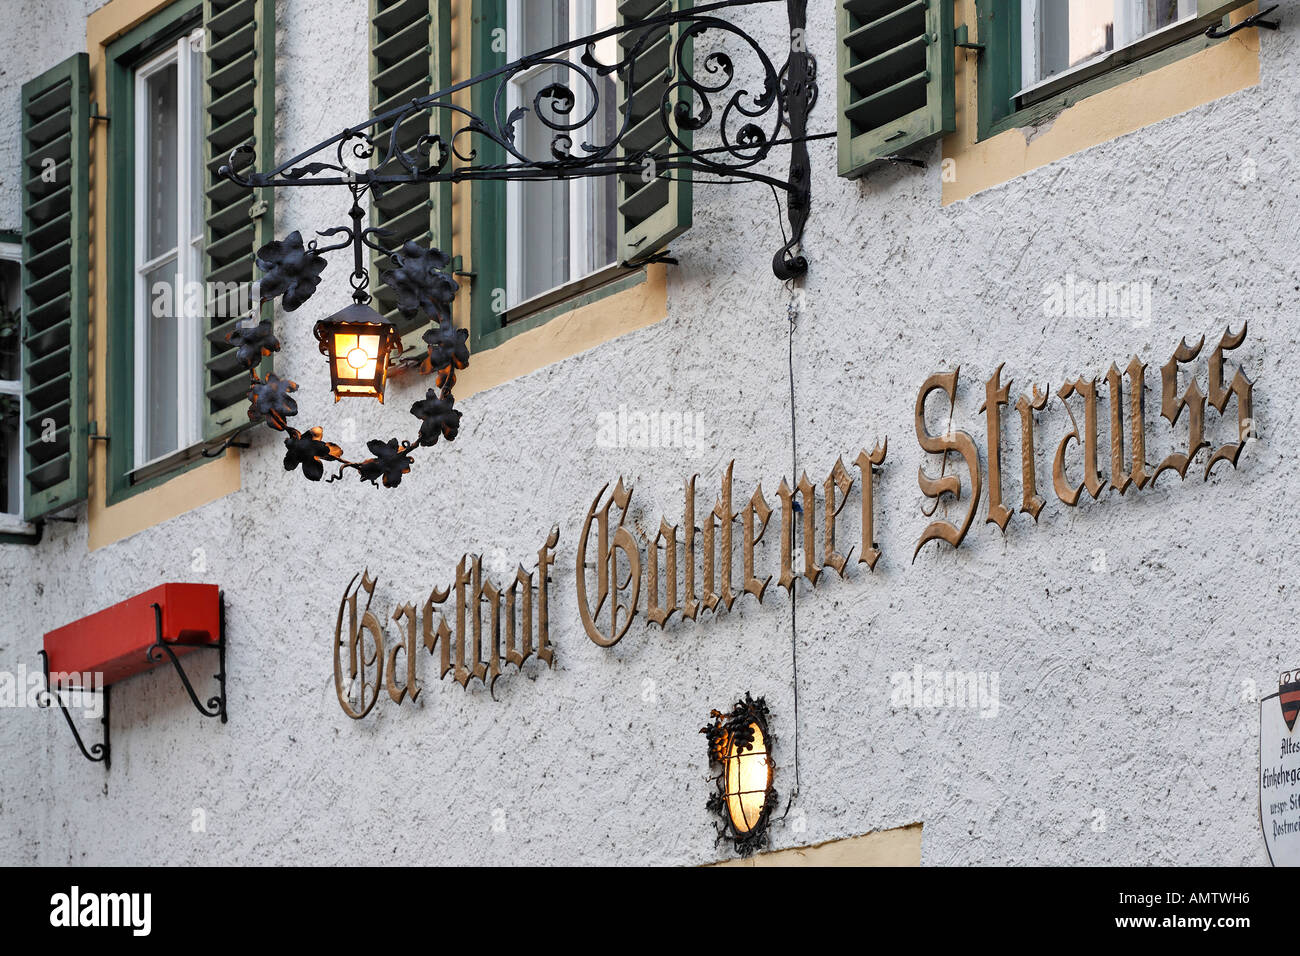 restaurant Goldener Strauß, Dürnstein, area of Wachau, Lower Austria, Austria Stock Photo